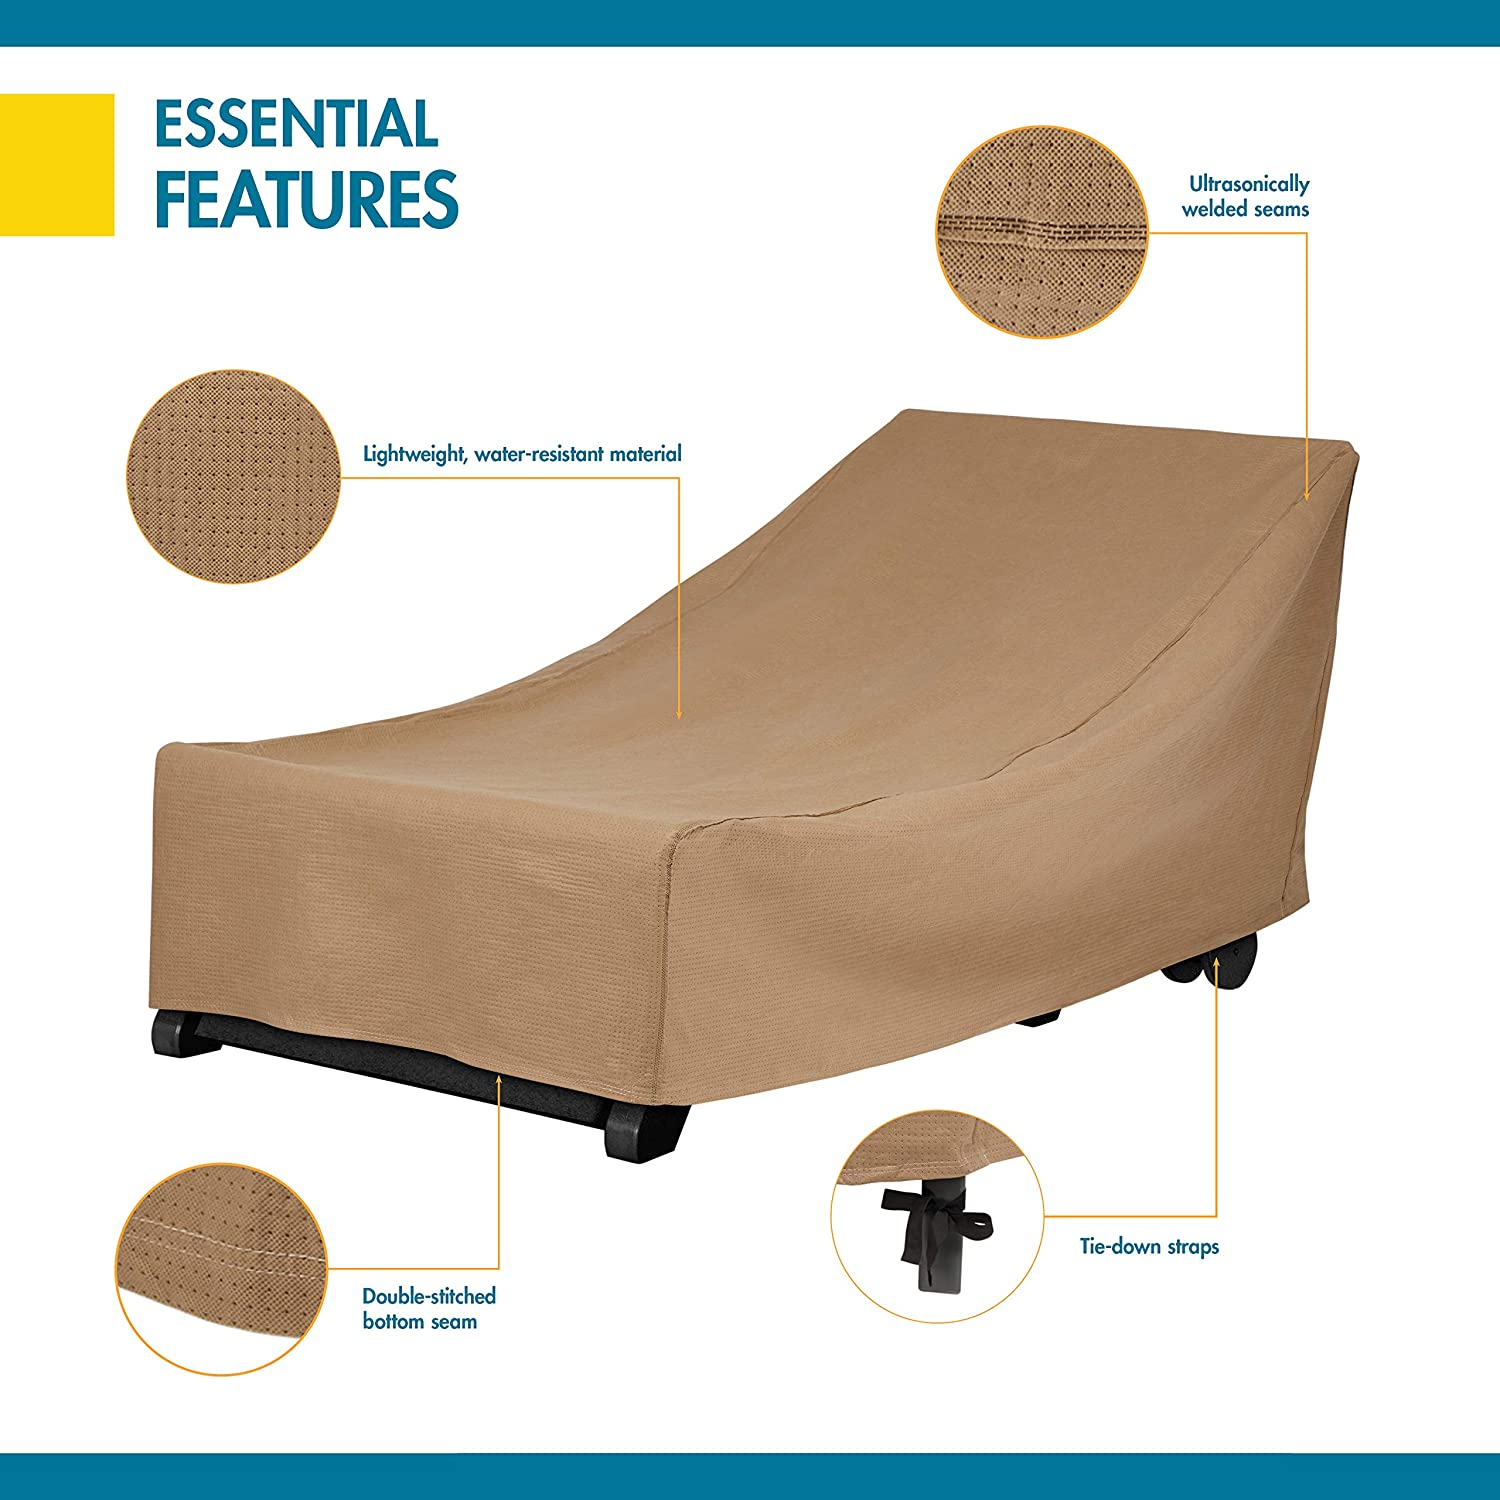 80-Inch Duck Covers Essential Patio Chaise Lounge Cover